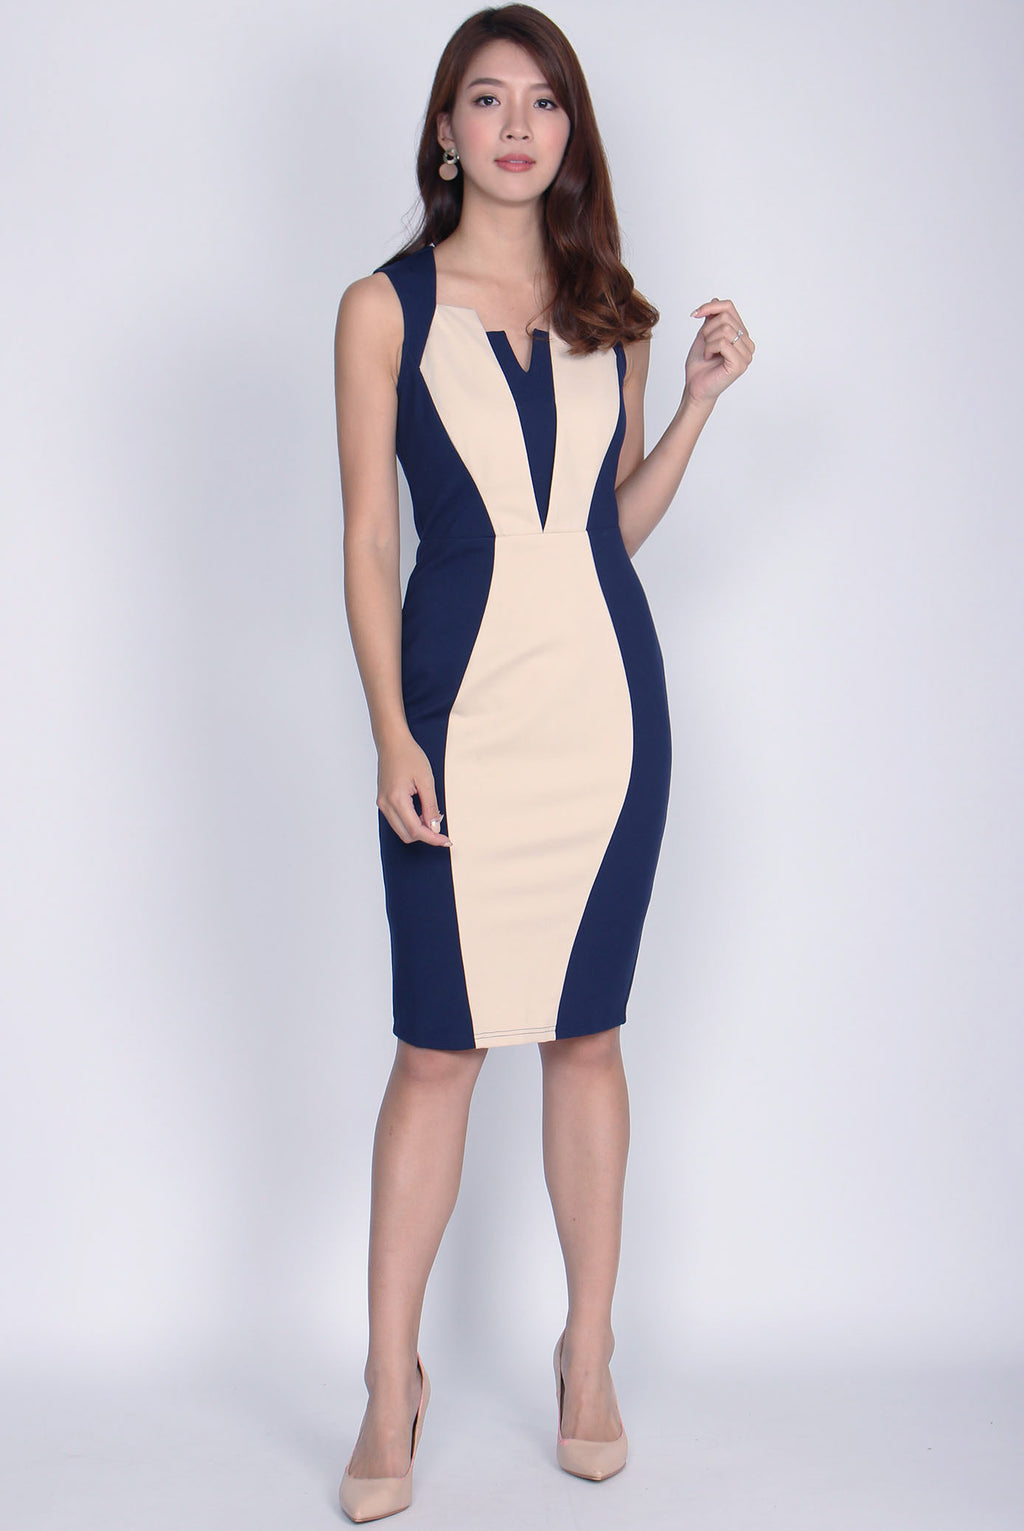 *Backorder*Premium* Anisten Colourblock Work Dress In Navy Blue